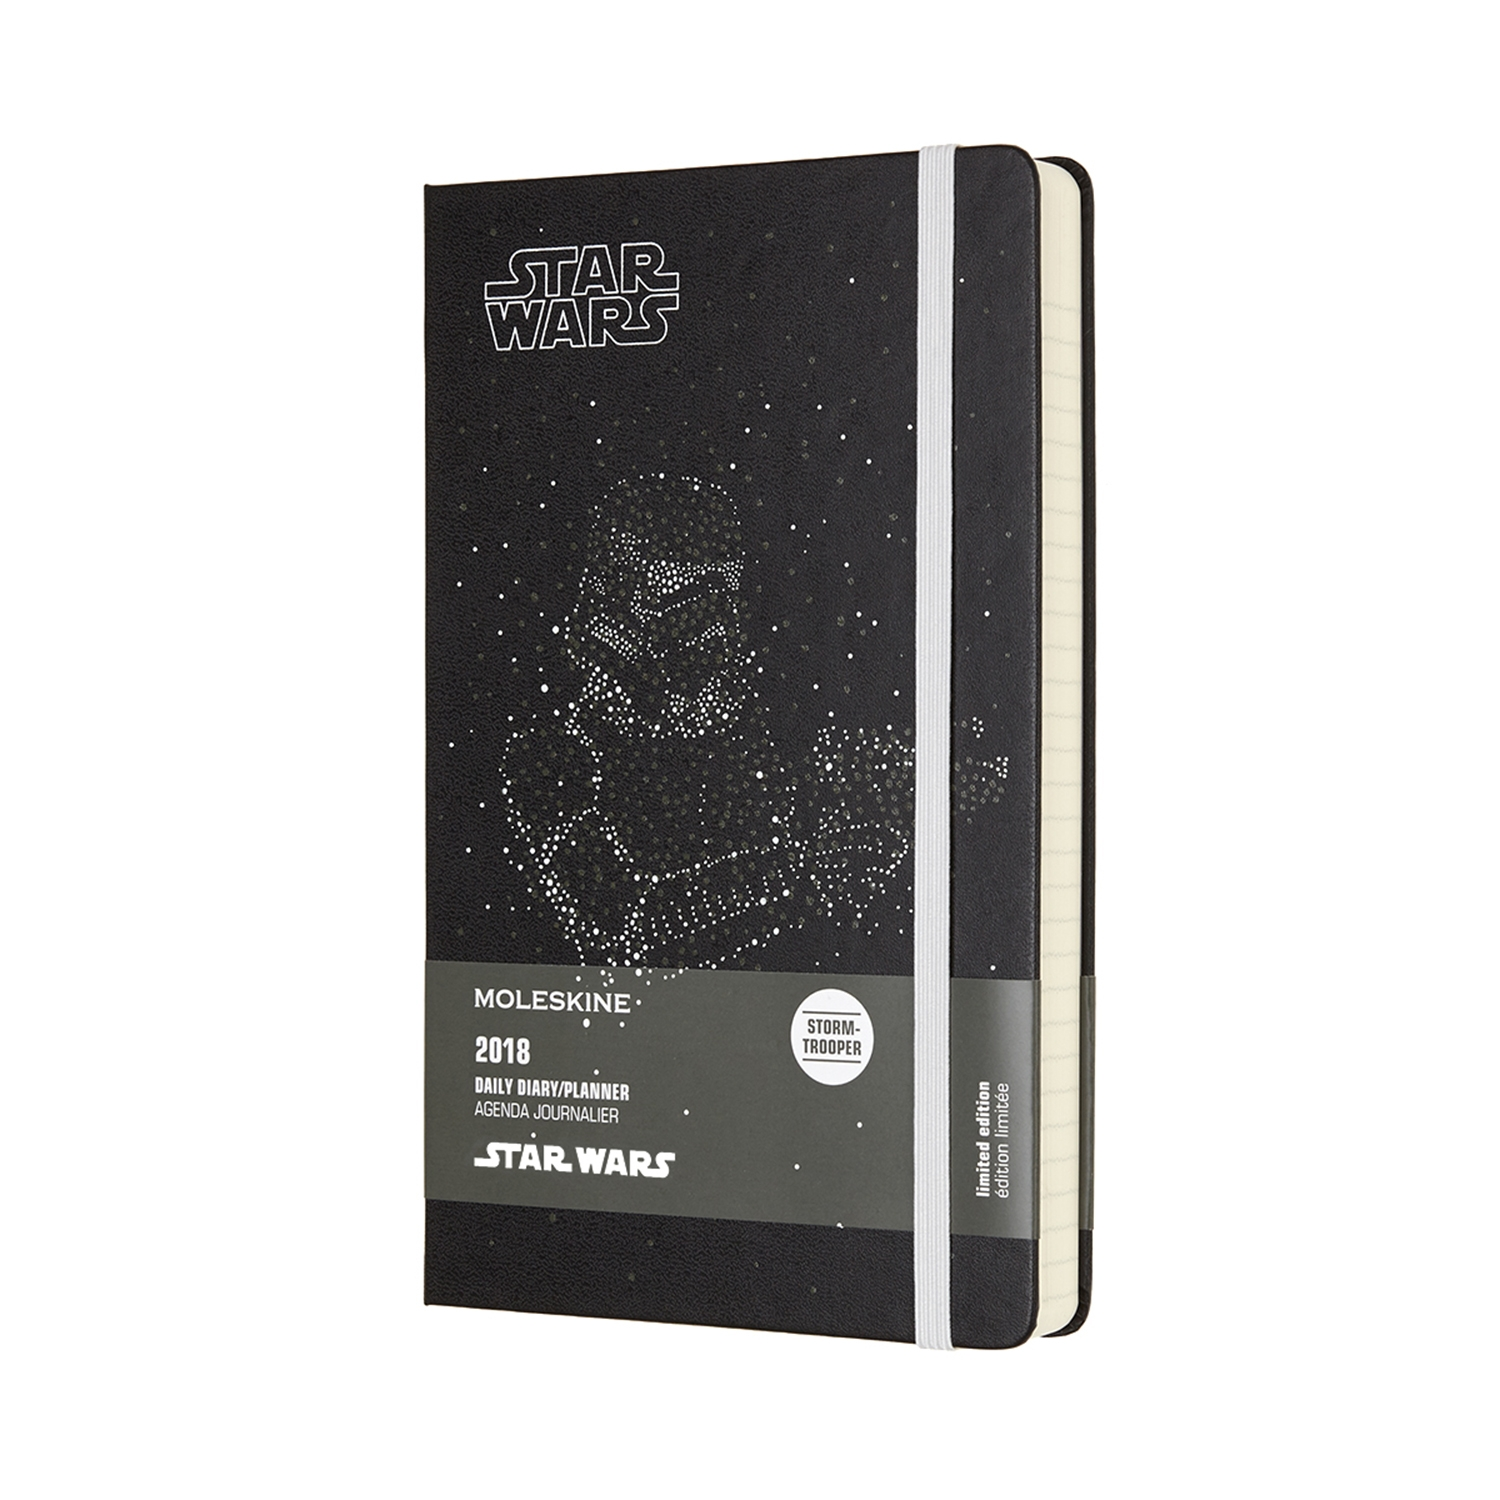 MOLESKINE 12M STAR WARS DAILY LARGE STORMTROOPER by Moleskine